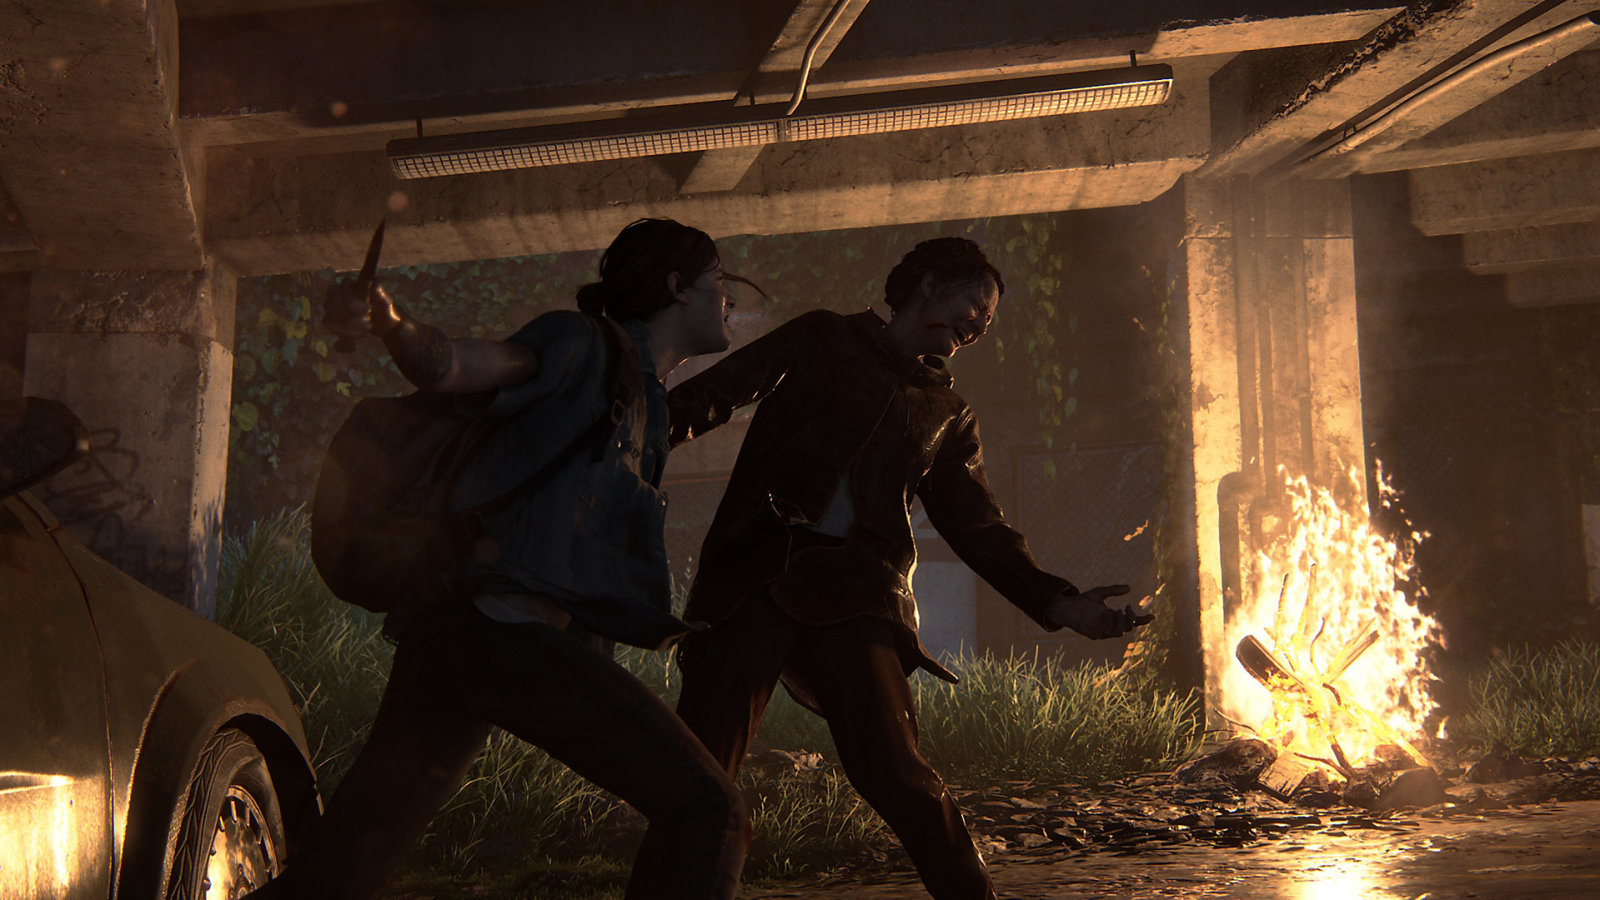 The Last of Us Part II lands on February 21st 2020 Engadget 1600x900